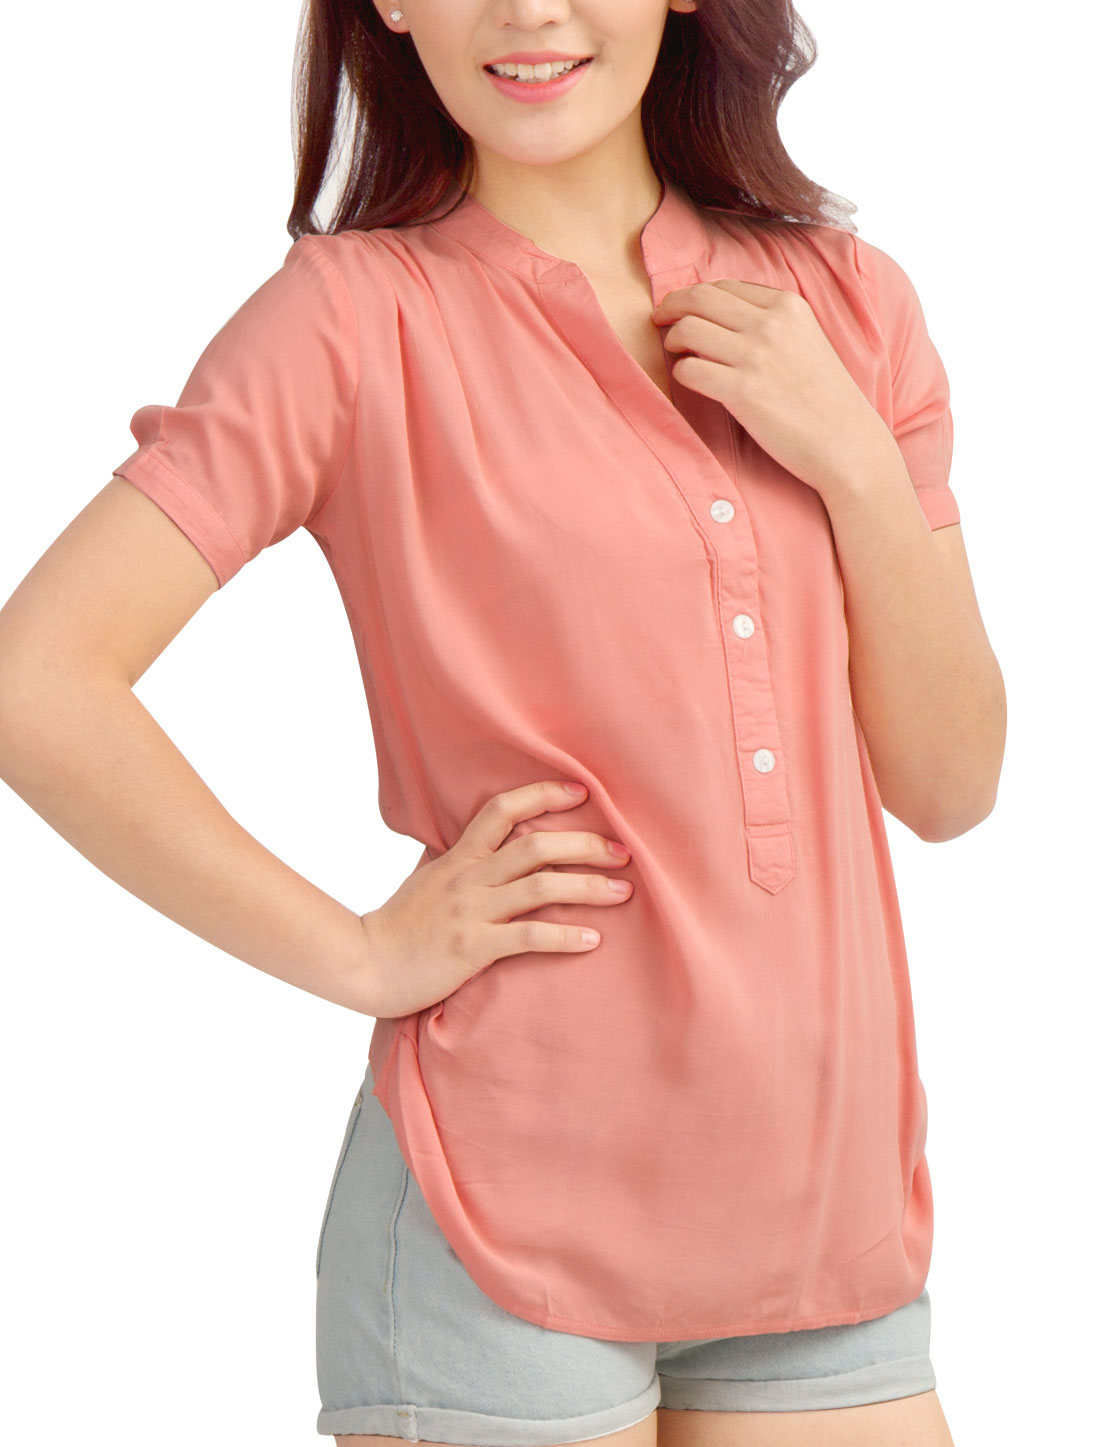 Women Three Buttons Closed Short Sleeve Stylish Top Shirt Pink XS